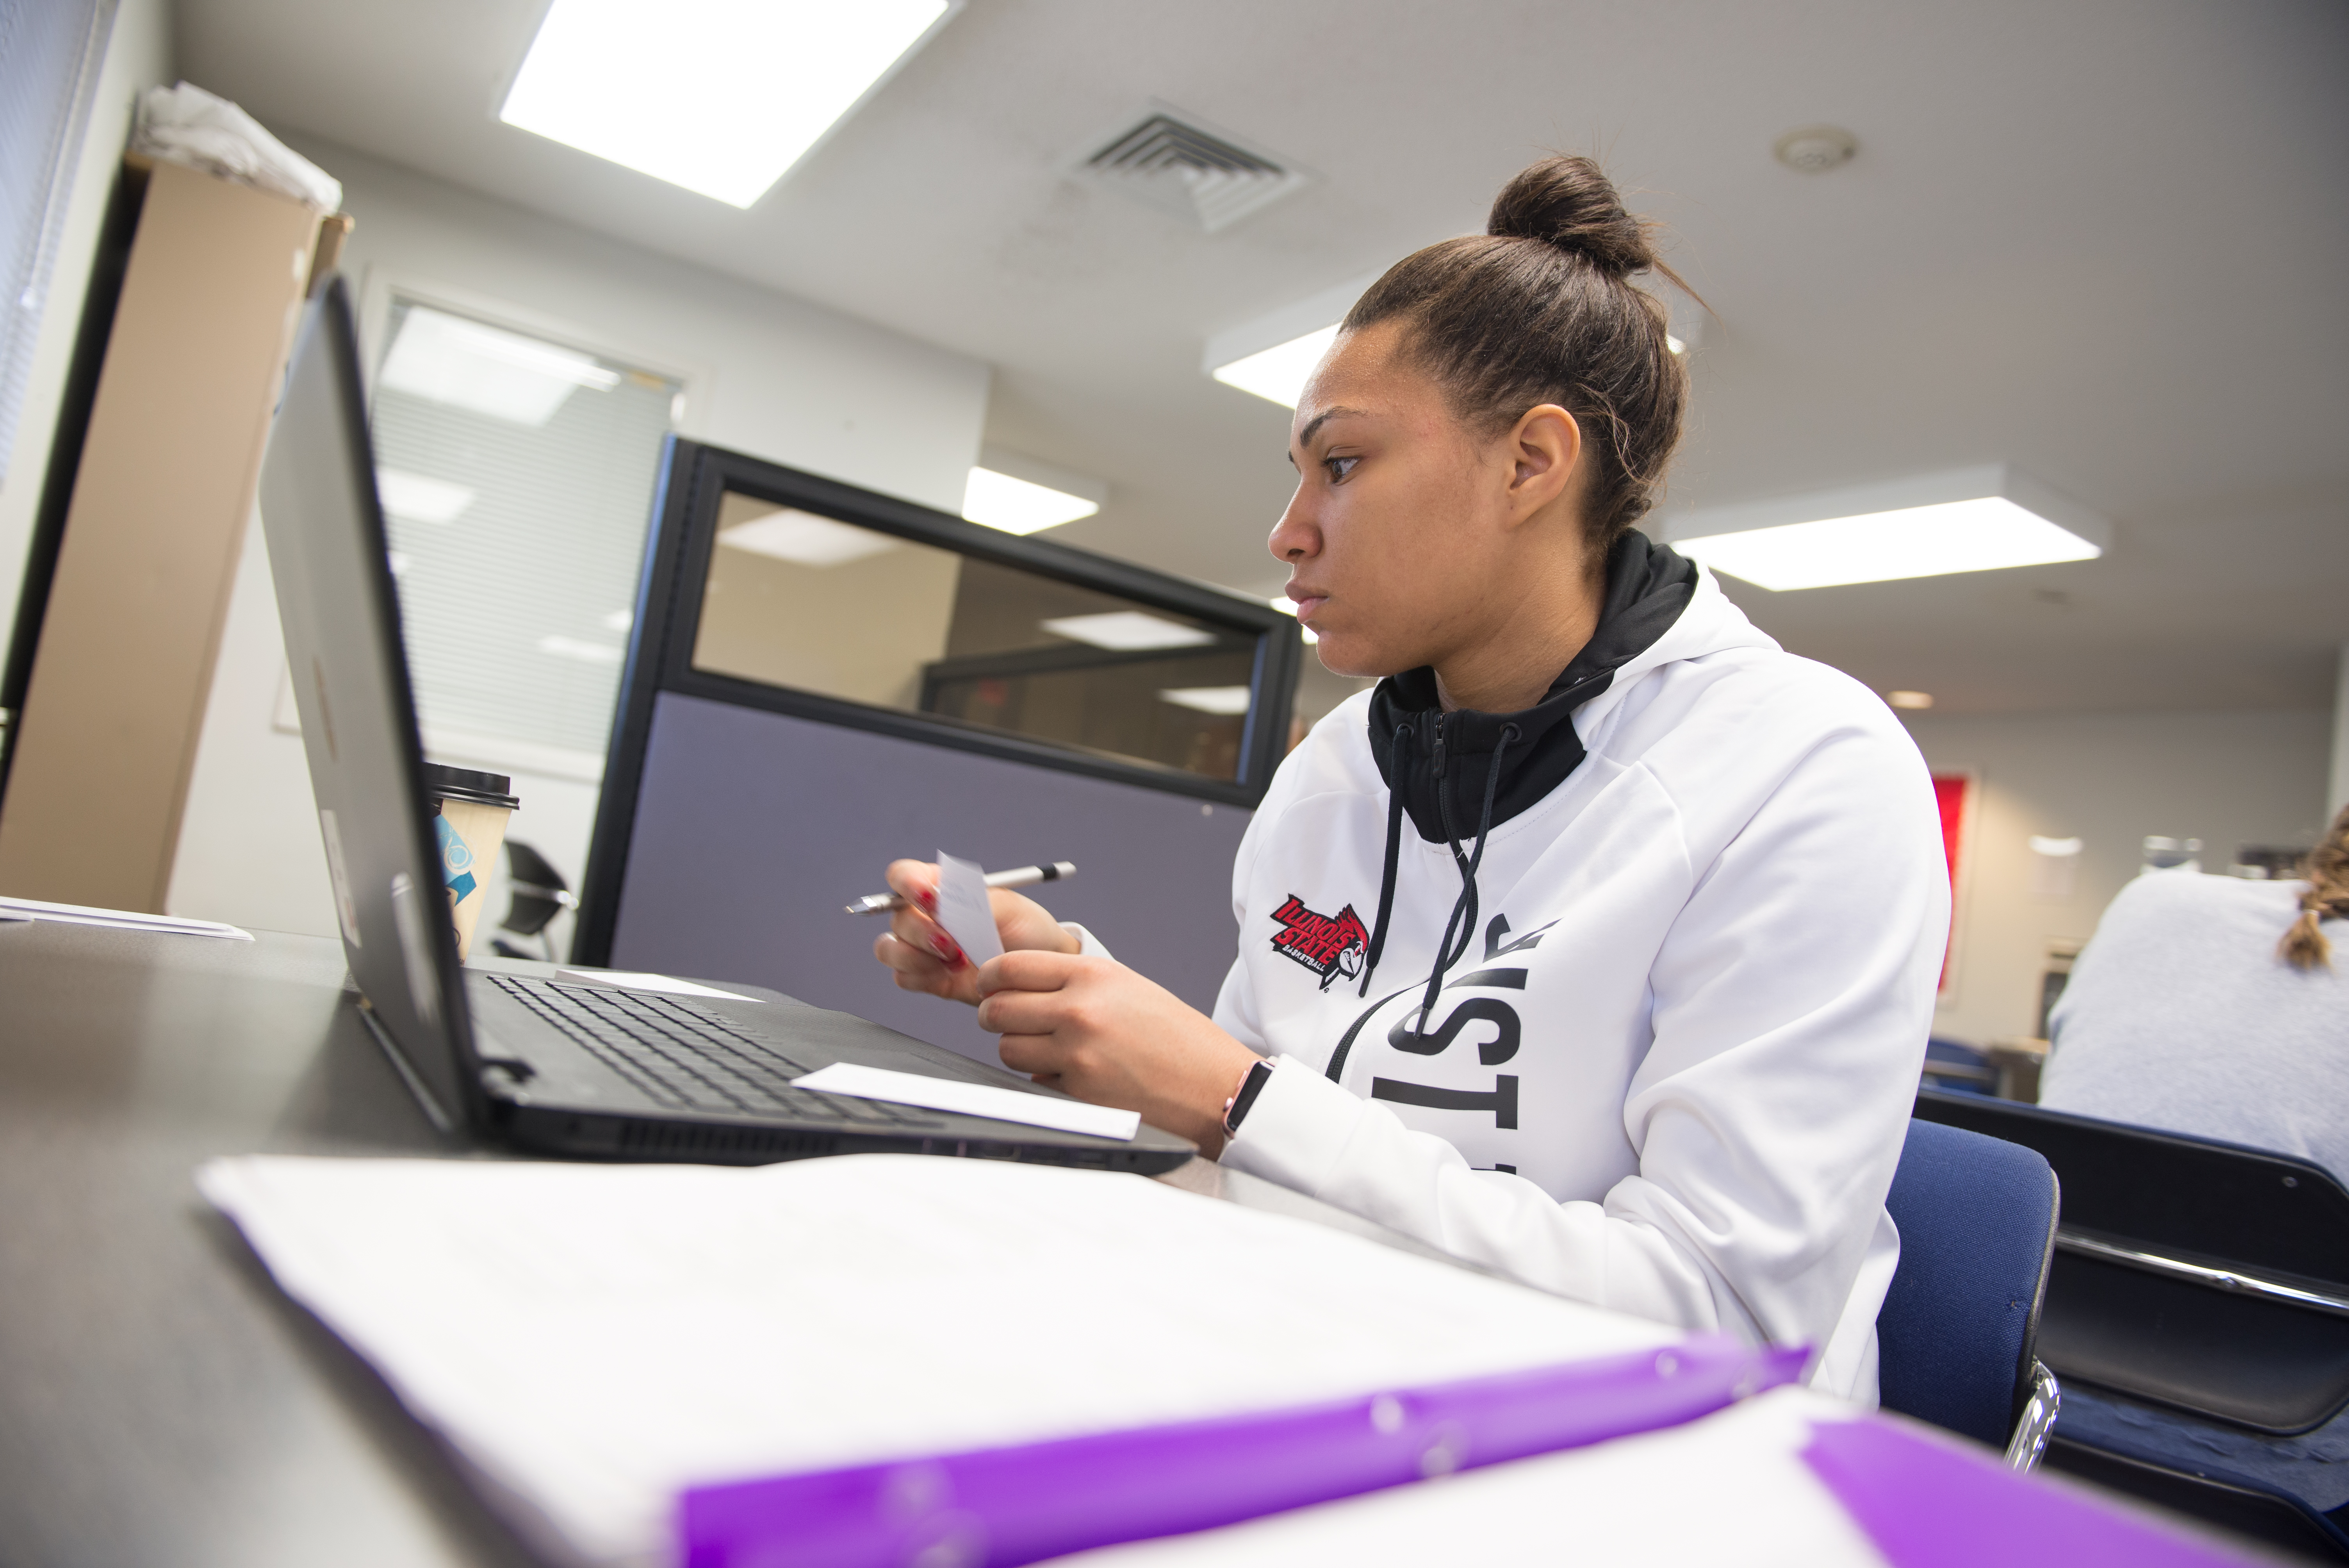 Student studying on the computer